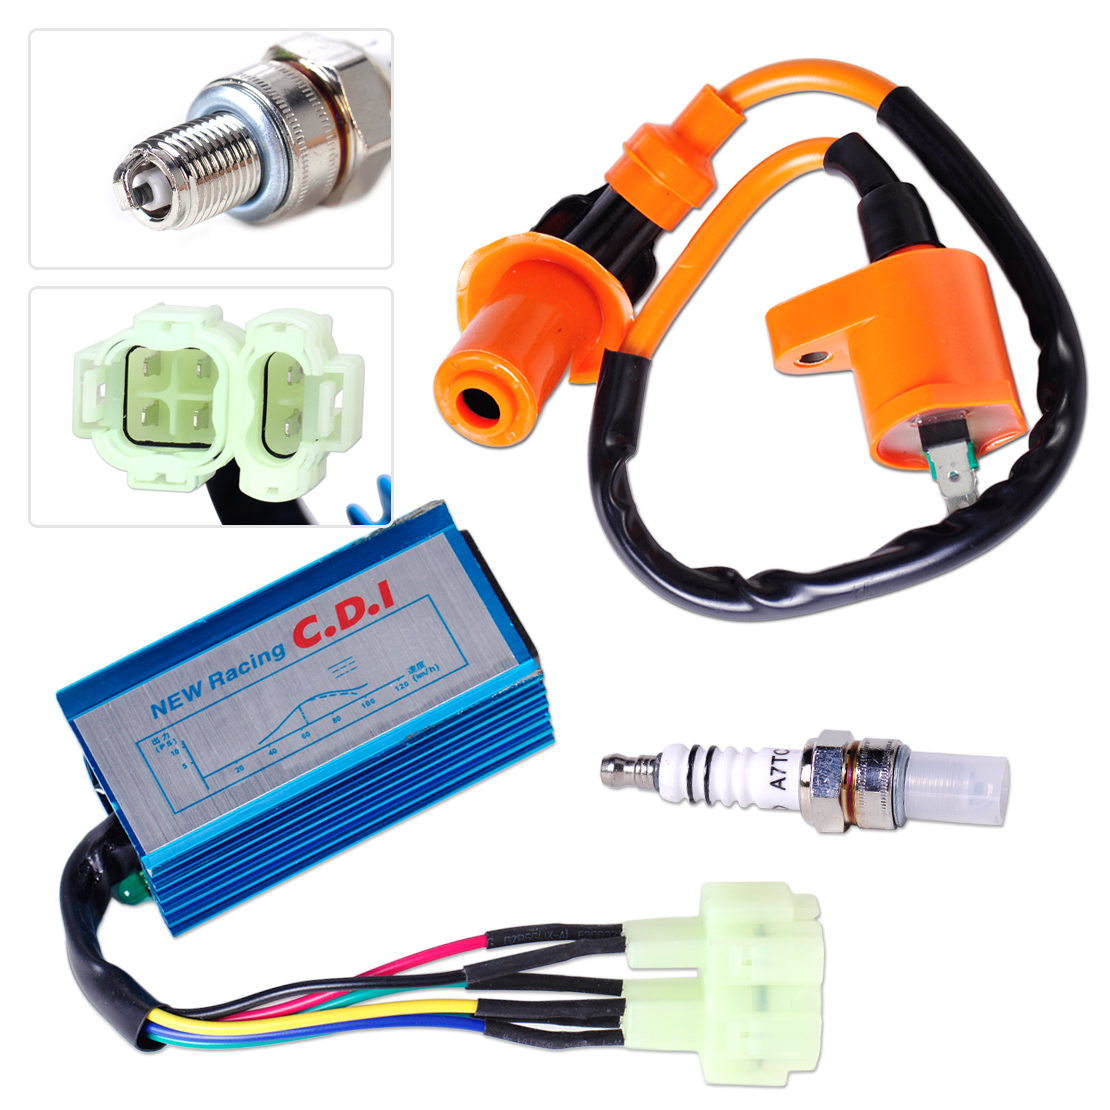 medium resolution of aliexpress com buy dwcx performance ignition coil spark plug wire cdi box for gy6 50cc 90cc 125cc 150cc scooter atv go kart moped dirt bike from